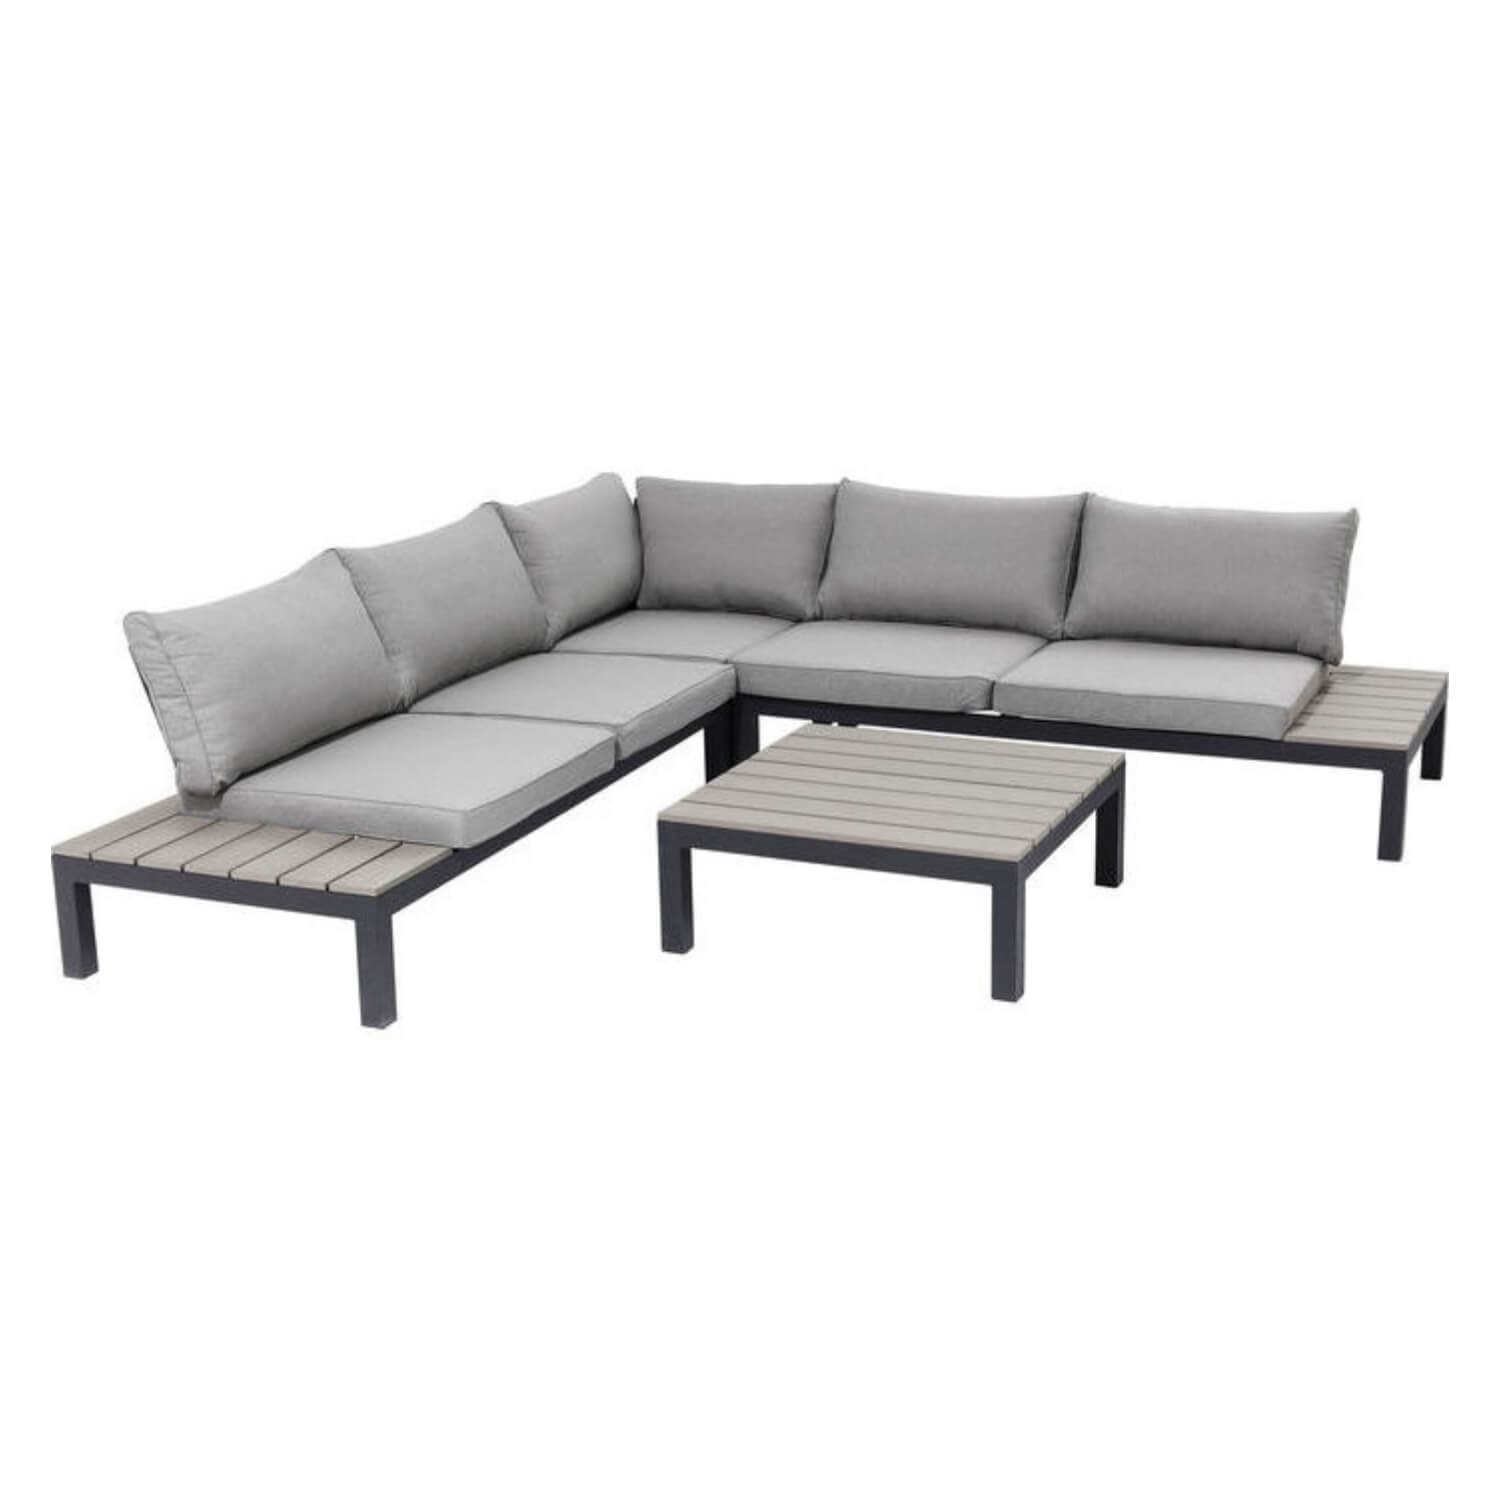 KARE DESIGN Holiday sofa havesæt - grå stof og sort aluminium